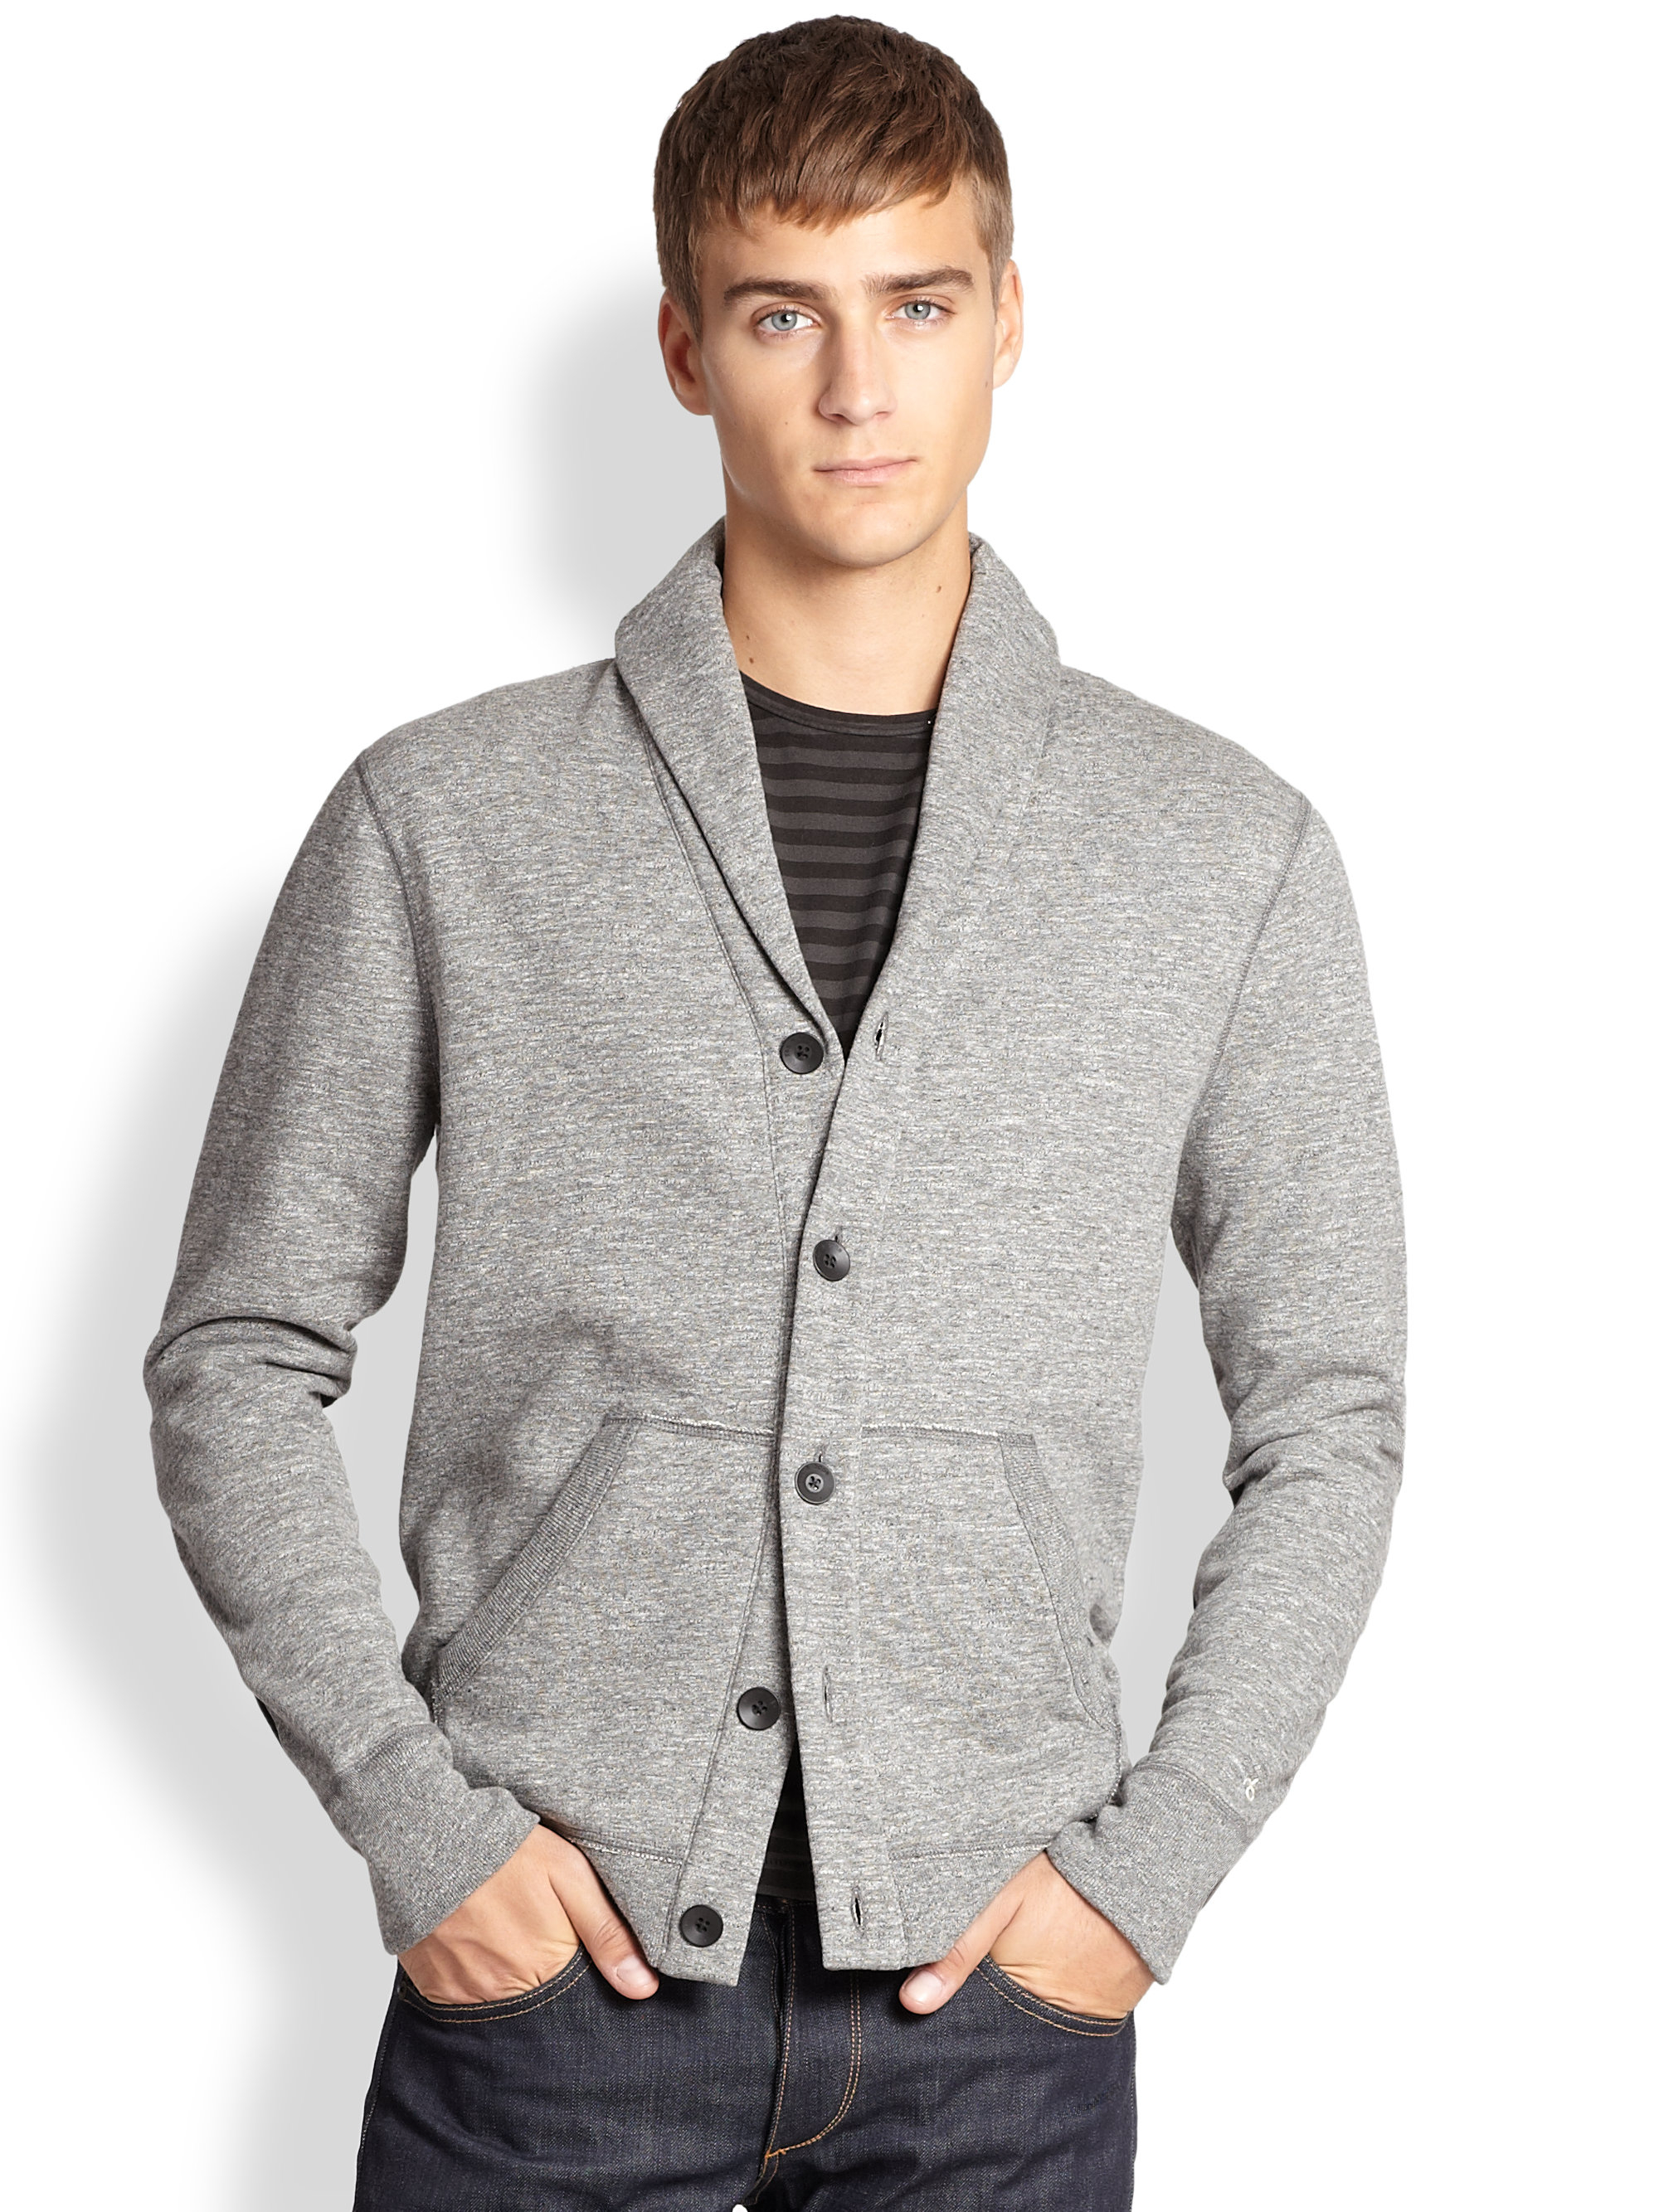 Rag & bone Shawl-Collar Sweatshirt Cardigan in Gray for Men | Lyst